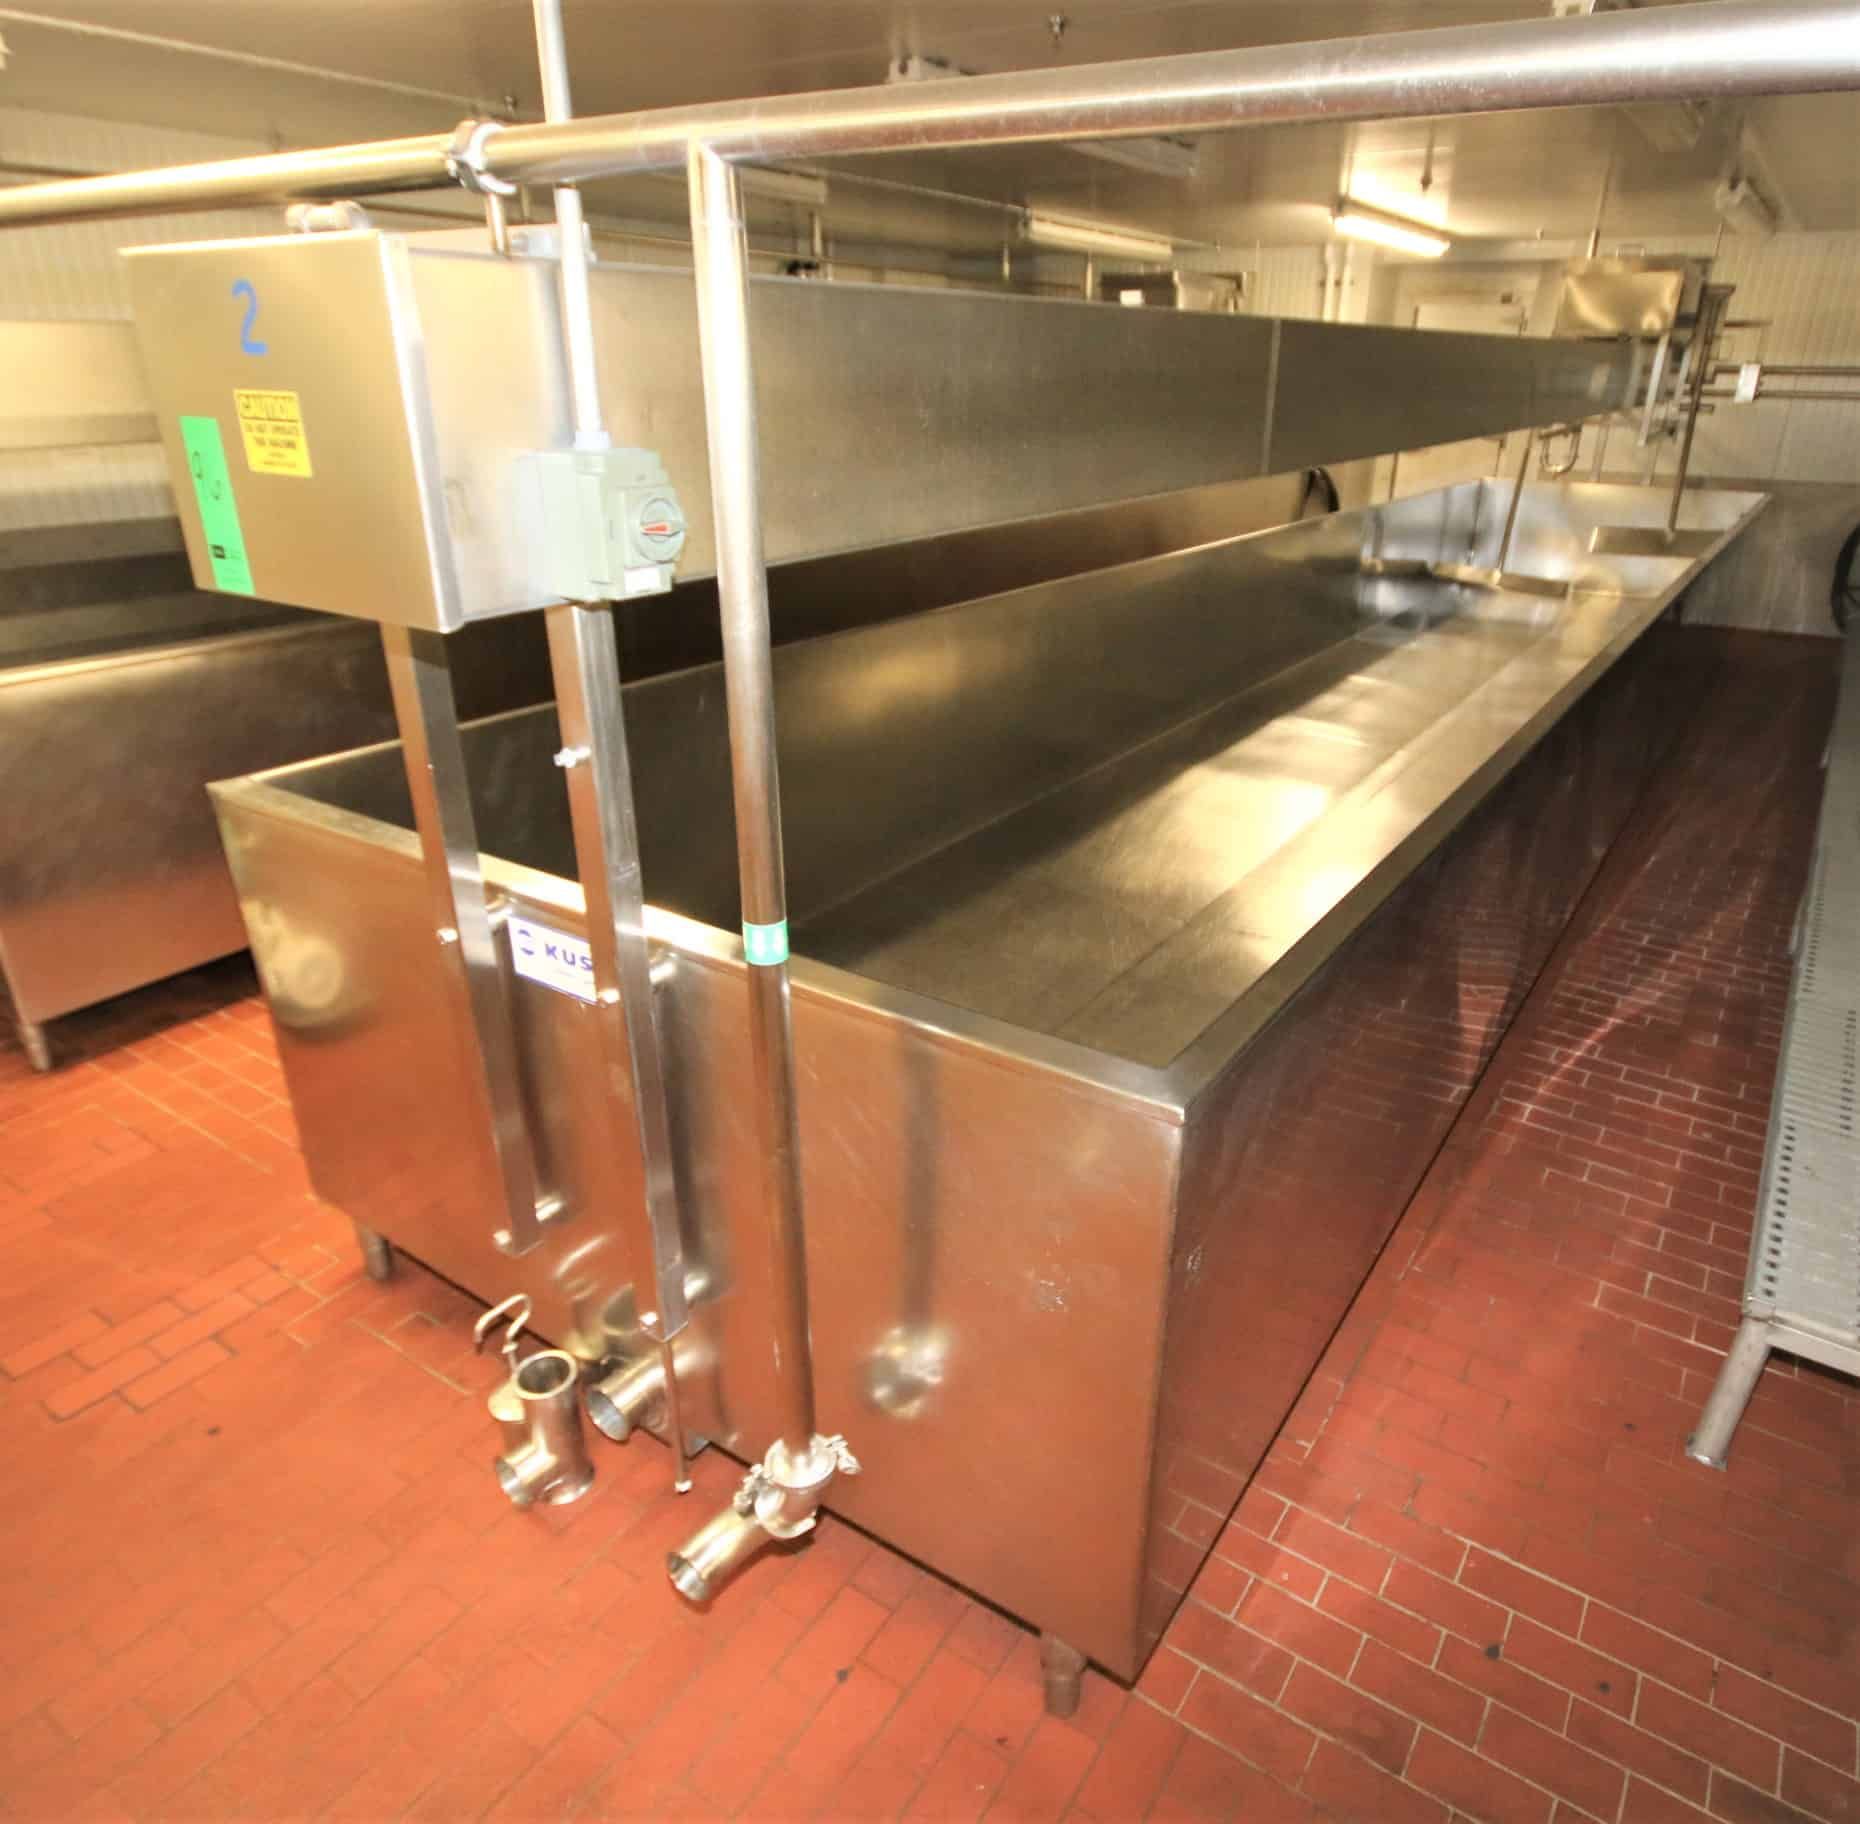 "Kusel Approx. 5,000 Gal. Open-Top Cheese Vats with Overhead Bridge Agitation, Agitator Blades, Allen Bradley SLC PLC Controls, Vat Dimensions Approx. 33 ft. 8"" L x 80"" W x 36"" H"